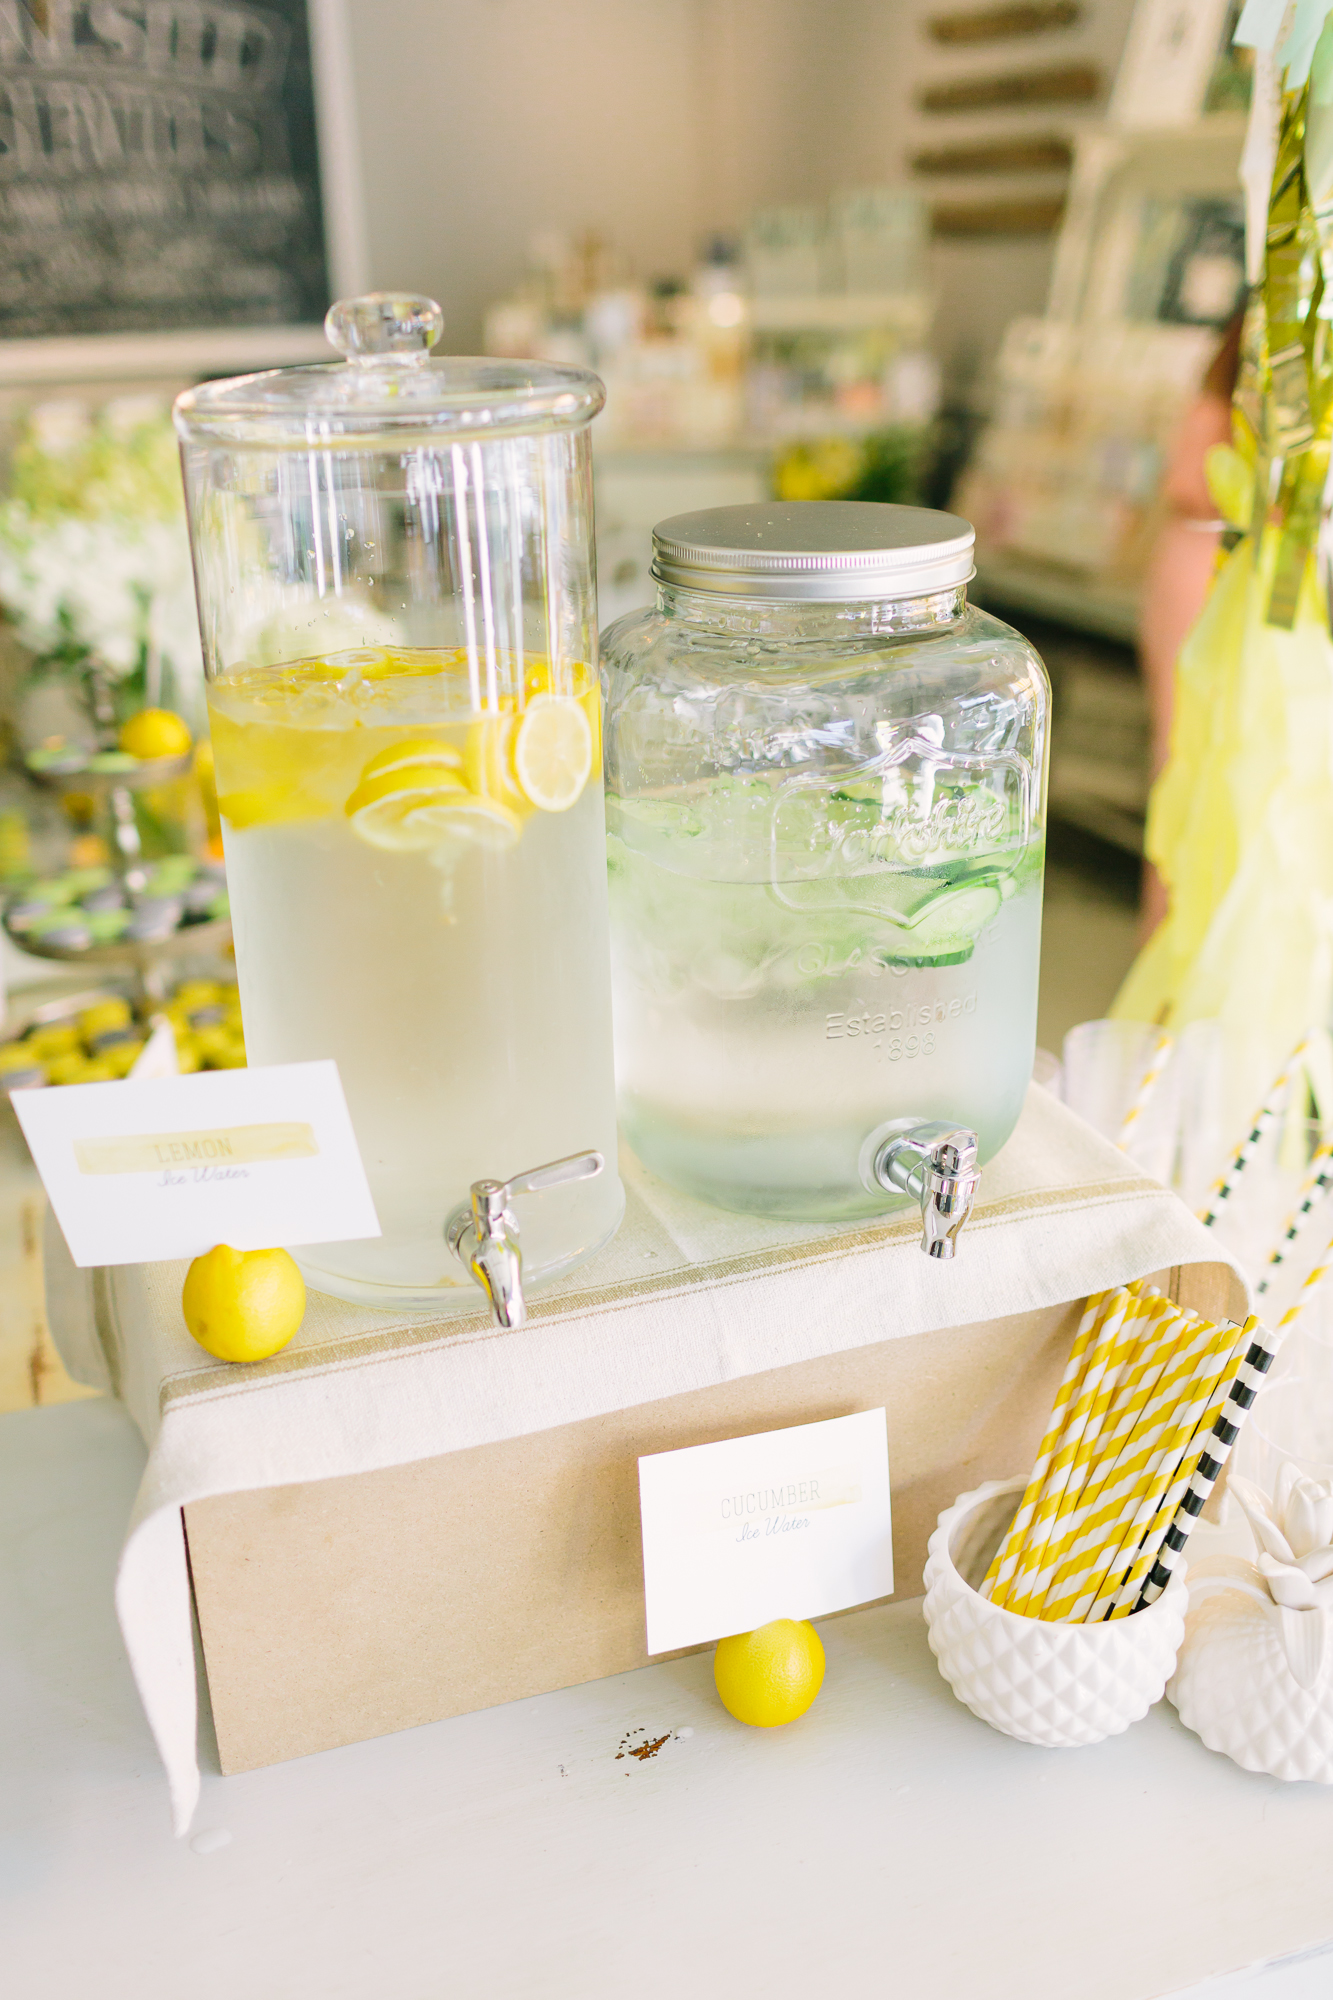 bash-studio-neatly-nested-lemon-cucumber-water-west-elm-dispenser.jpg